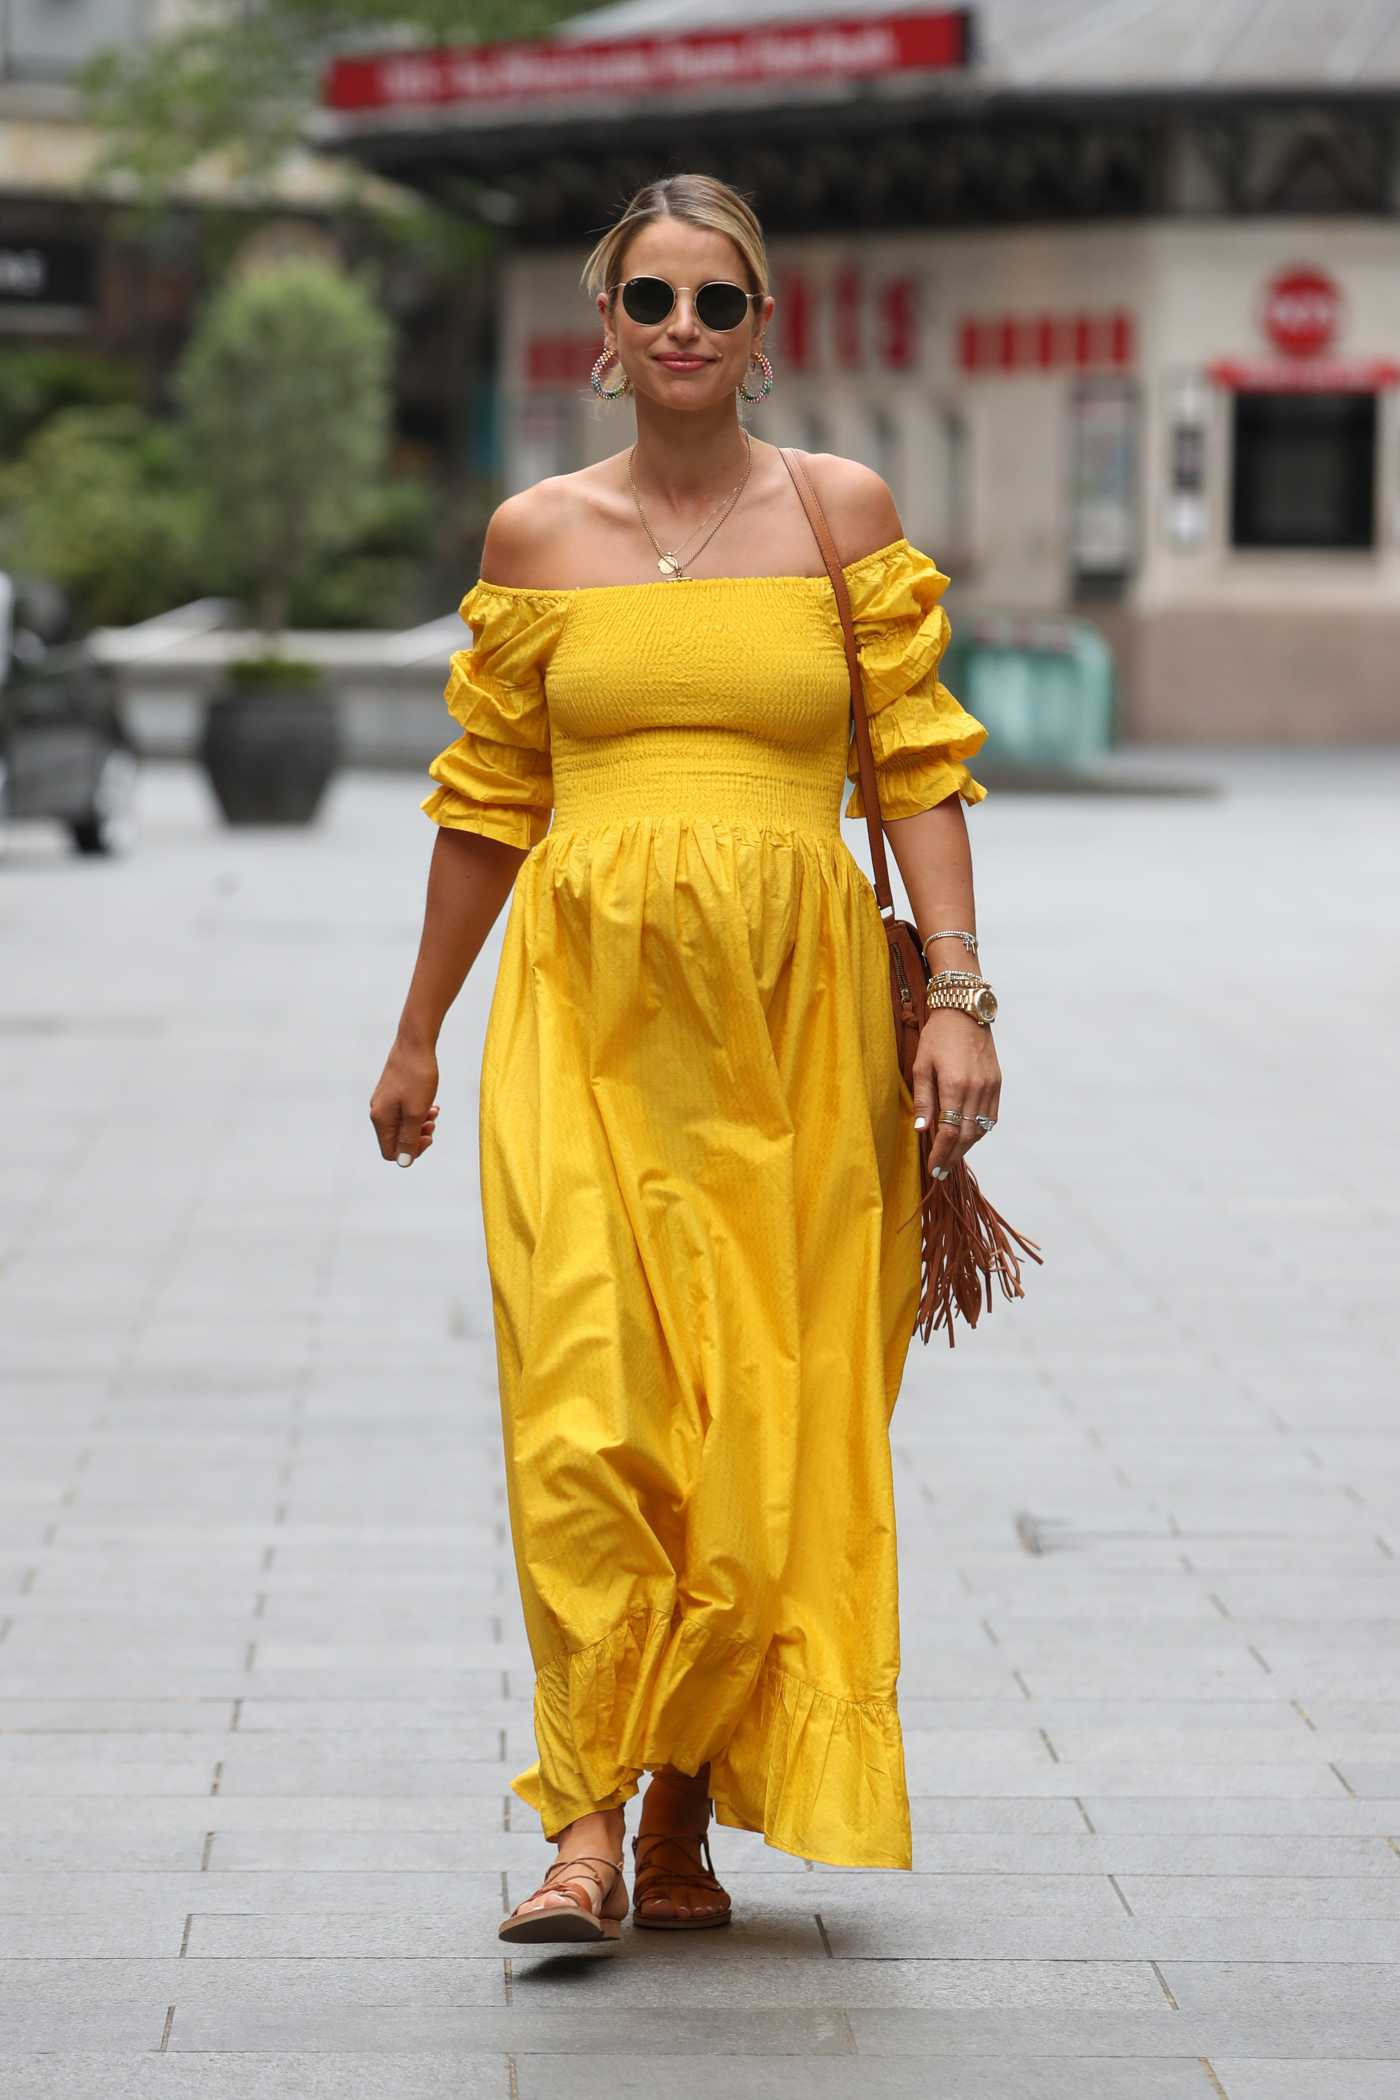 Vogue Williams in a Yellow Dress Arrives at the Global Radio in London 05/24/2020